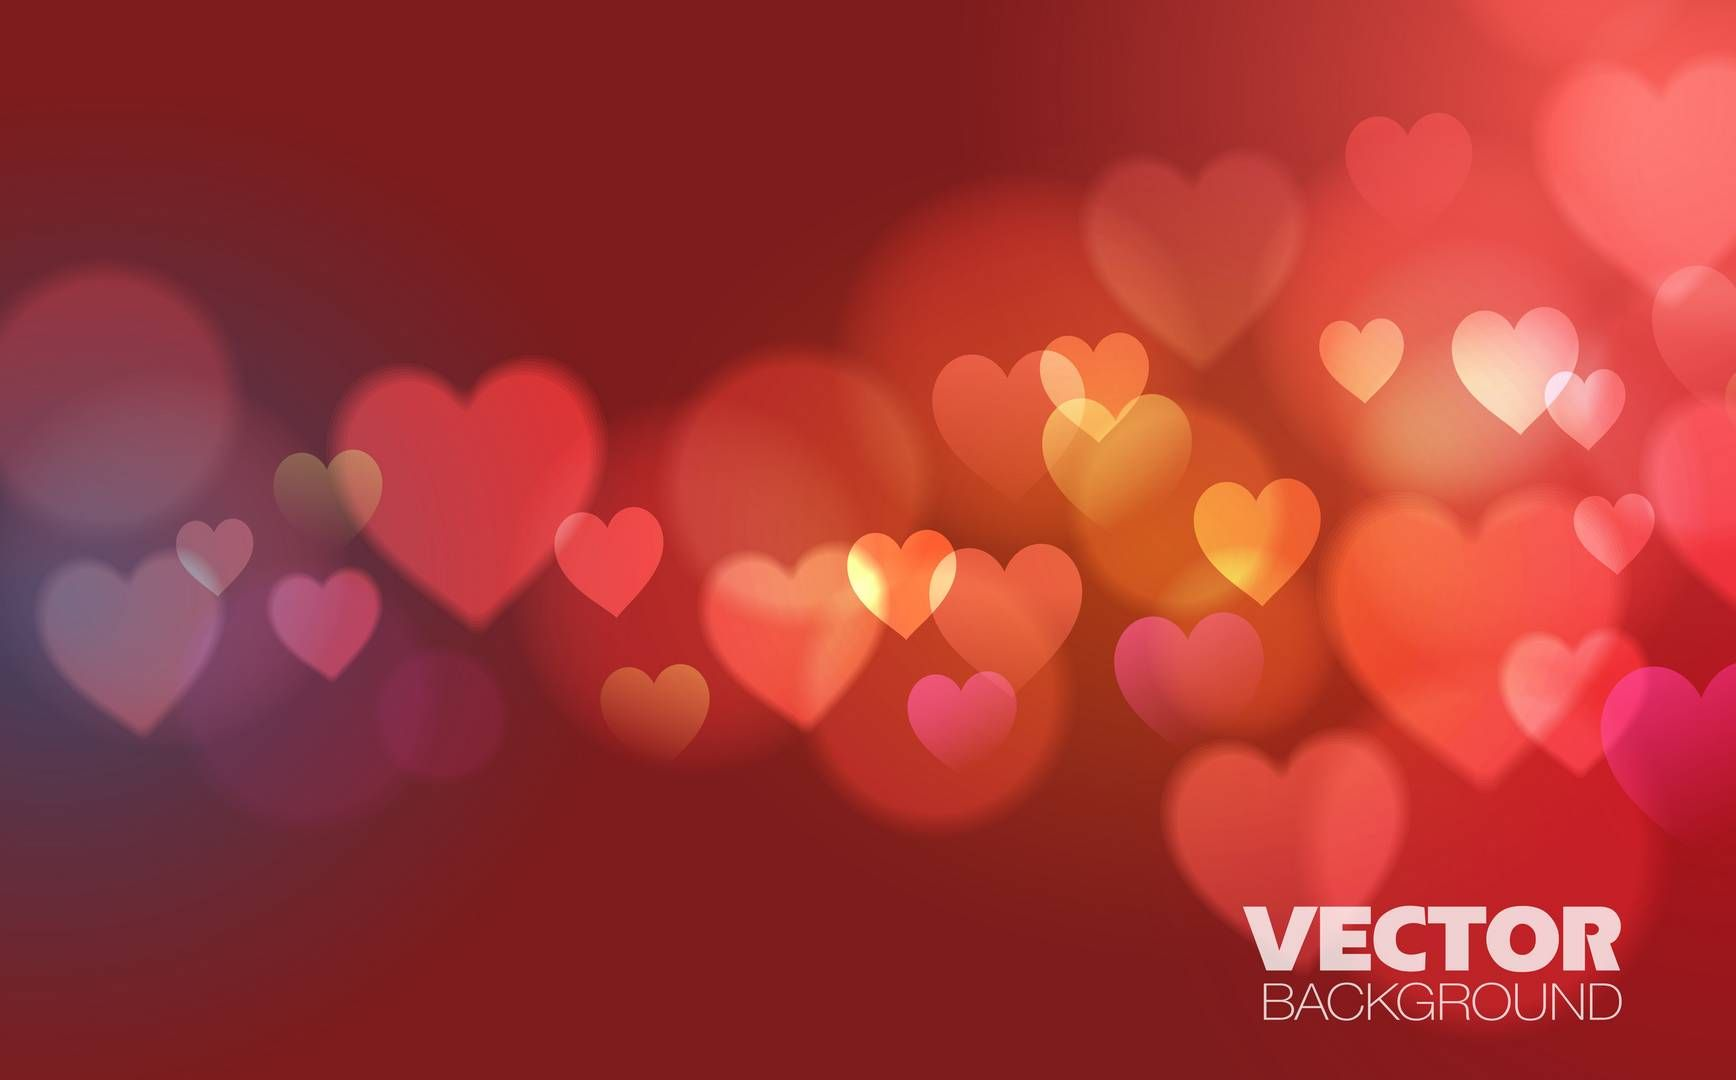 Valentine Day Hd Images 3 Hd Wallpapers Www Thoughts